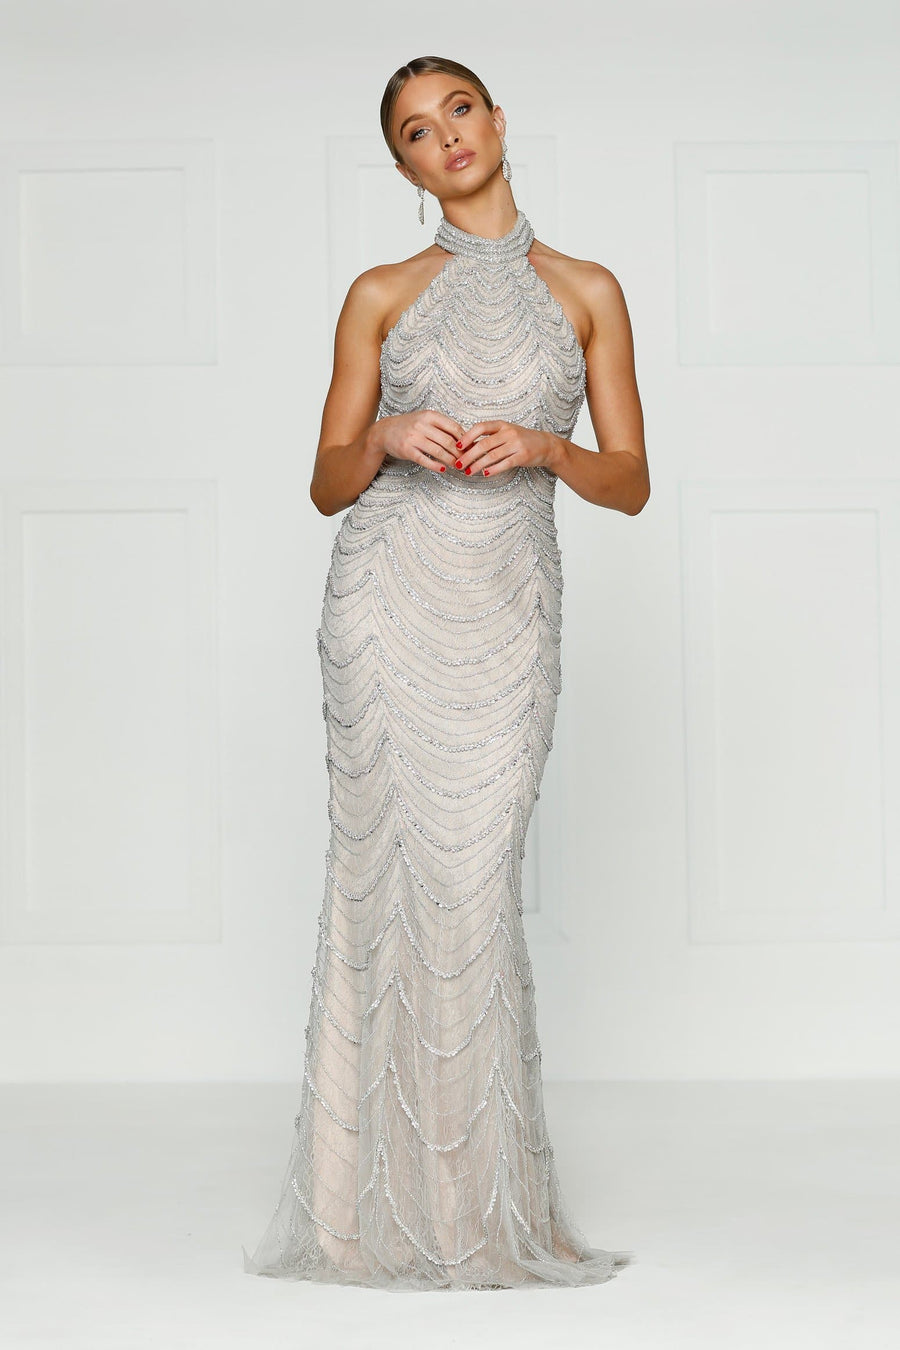 High neck beaded wedding dress. Formal Dress. Prom Dress. Available online.